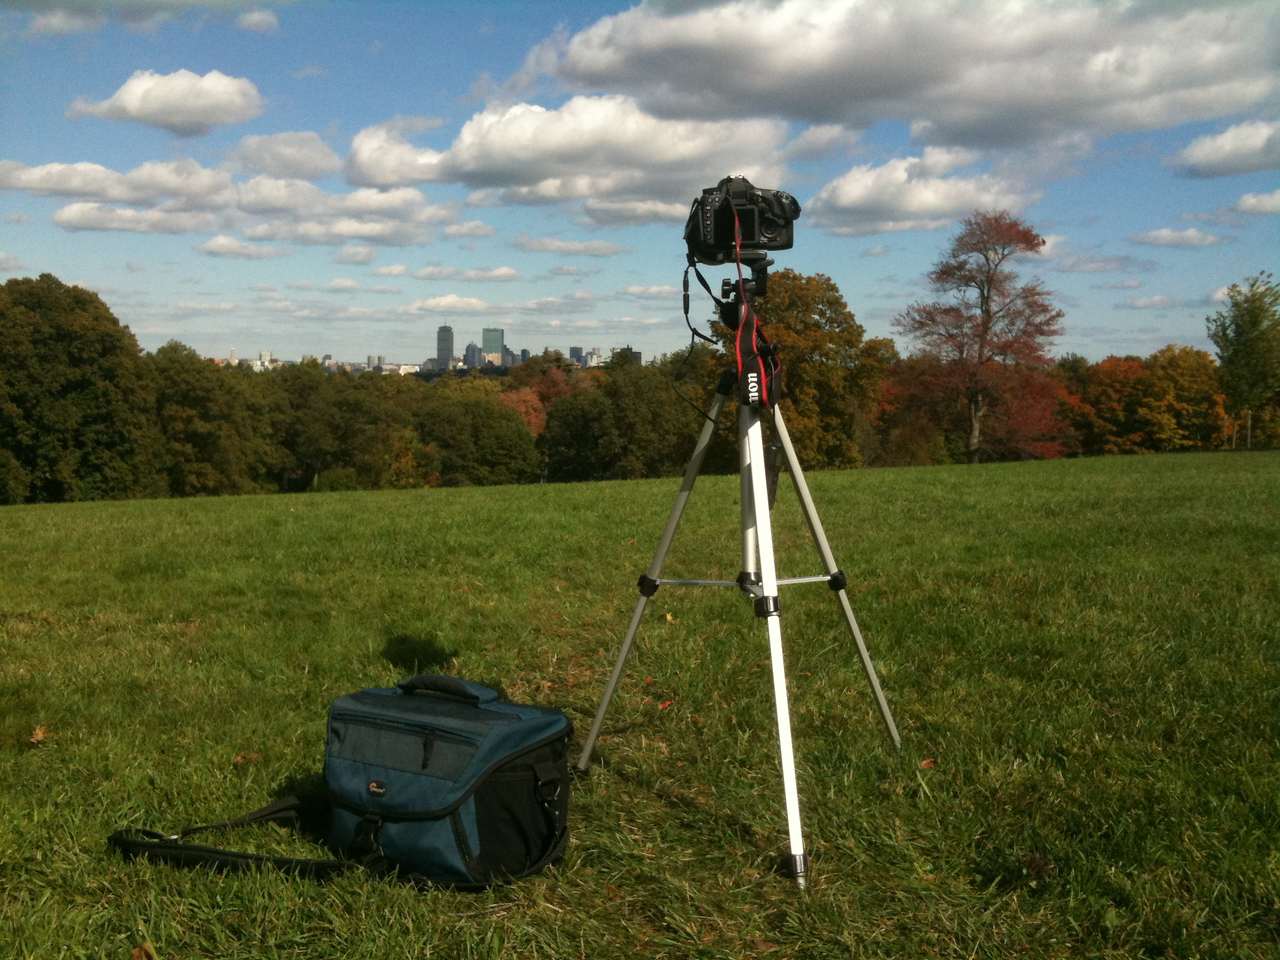 Here's my setup for Time-lapse photography at Larz Anderson Park, Brookline, MA.  The clouds were amazing, puffy and fast moving.  Taken with SmugShot on my iPhone